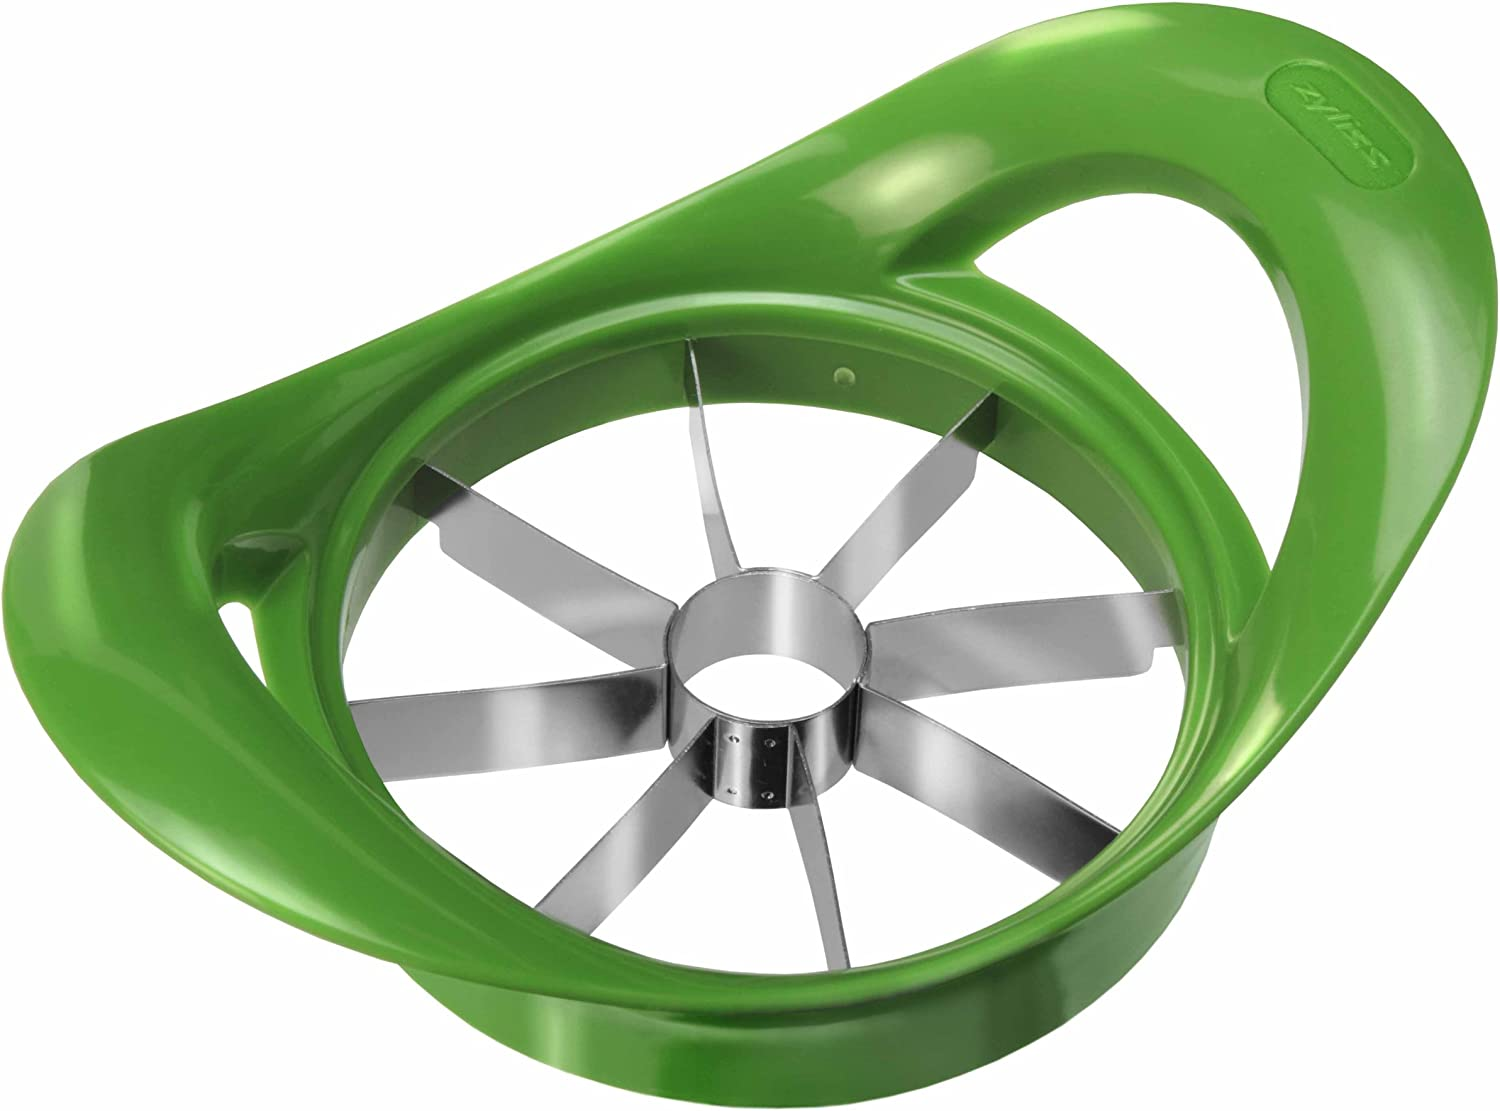 ZYLISS Apple Slicer - Cutter, Corer and Divider, Green